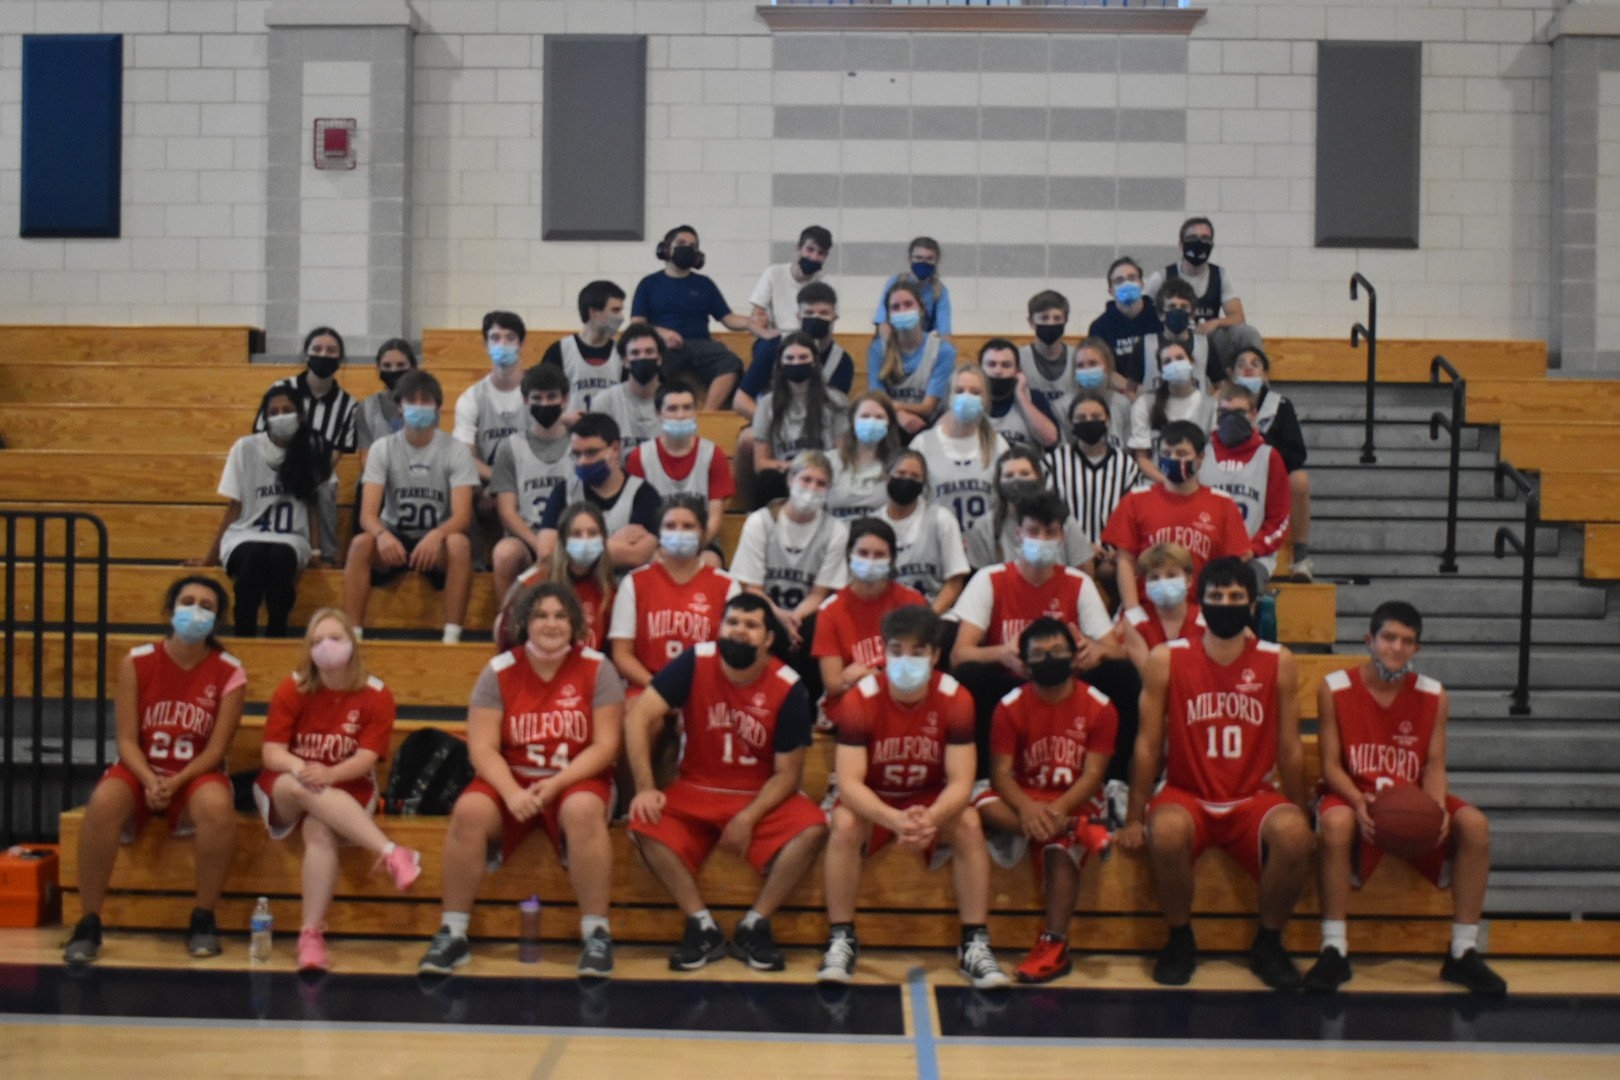 We are the Unified Athletic Teams of Franklin High School. We are proud members of the Special Olympics Unified Champion School Program.